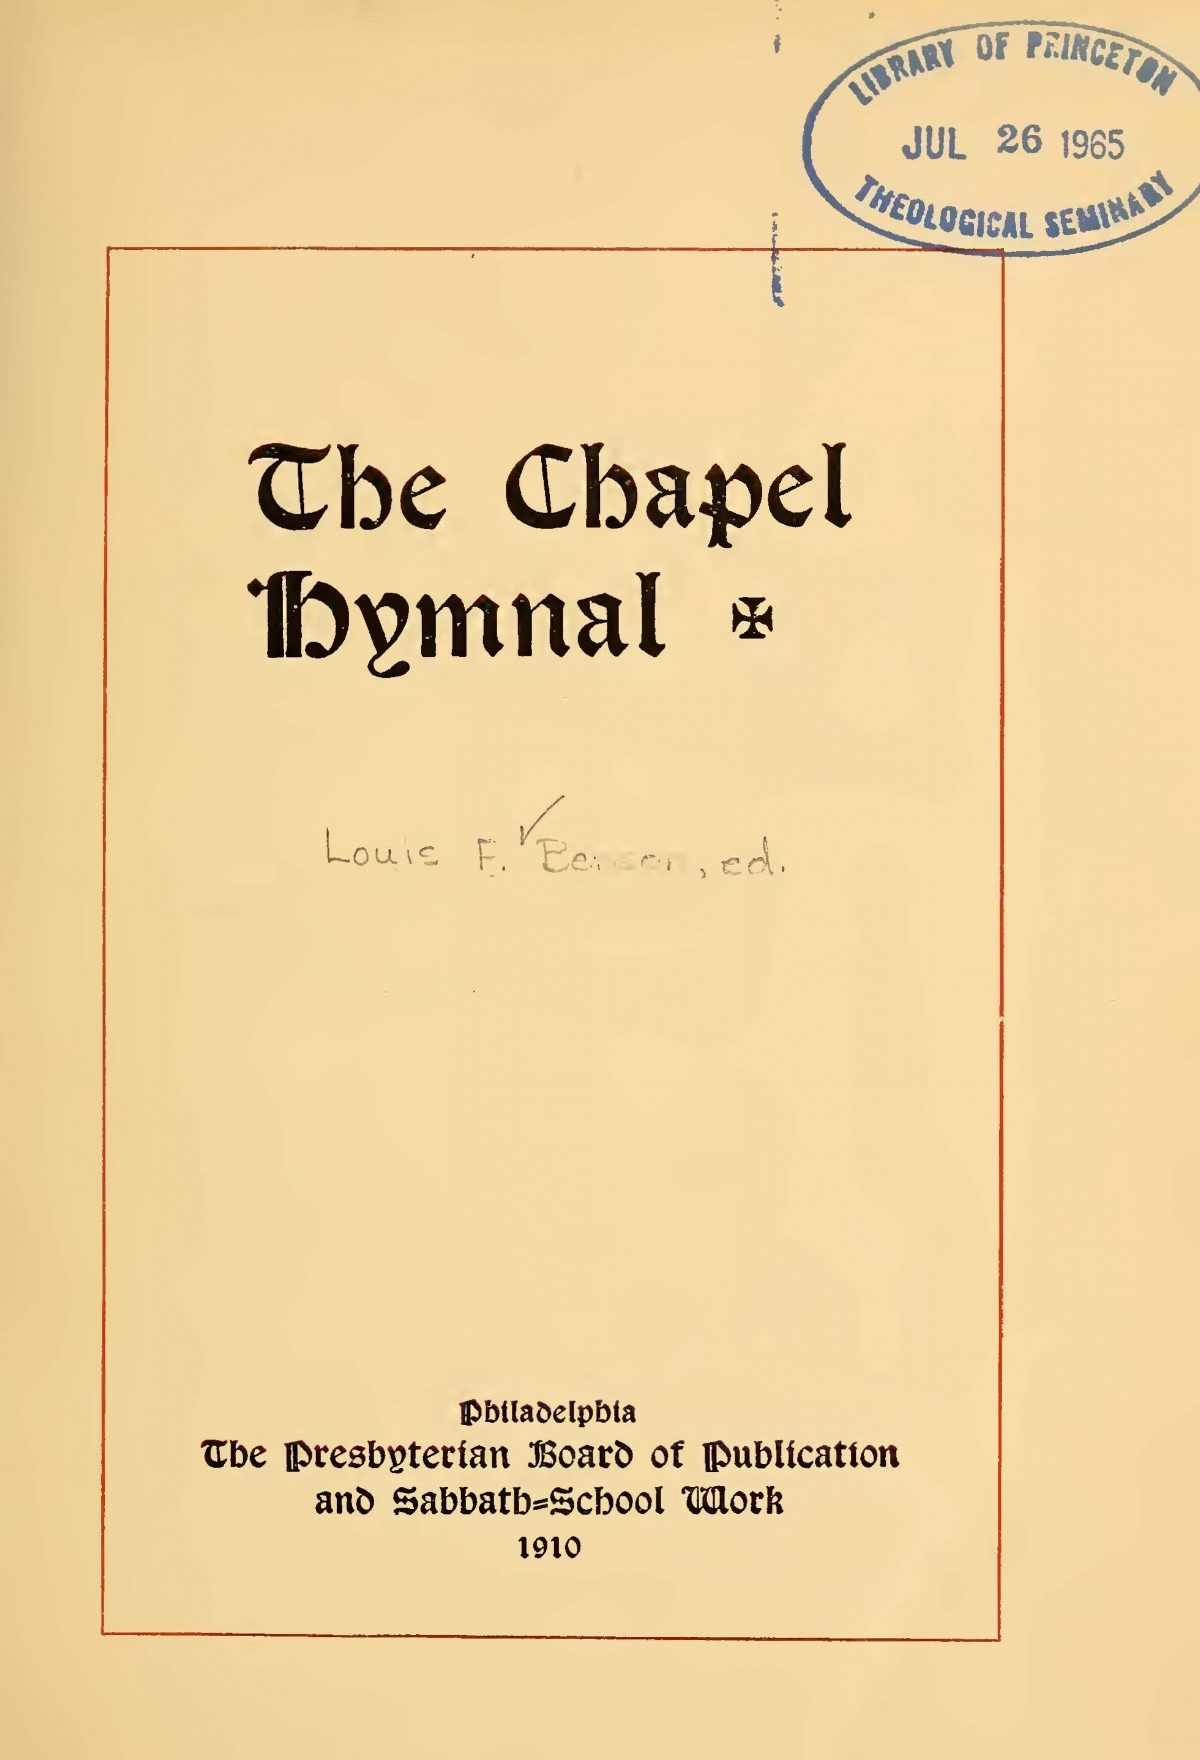 Benson, Louis FitzGerald, The Chapel Hymnal Title Page.jpg